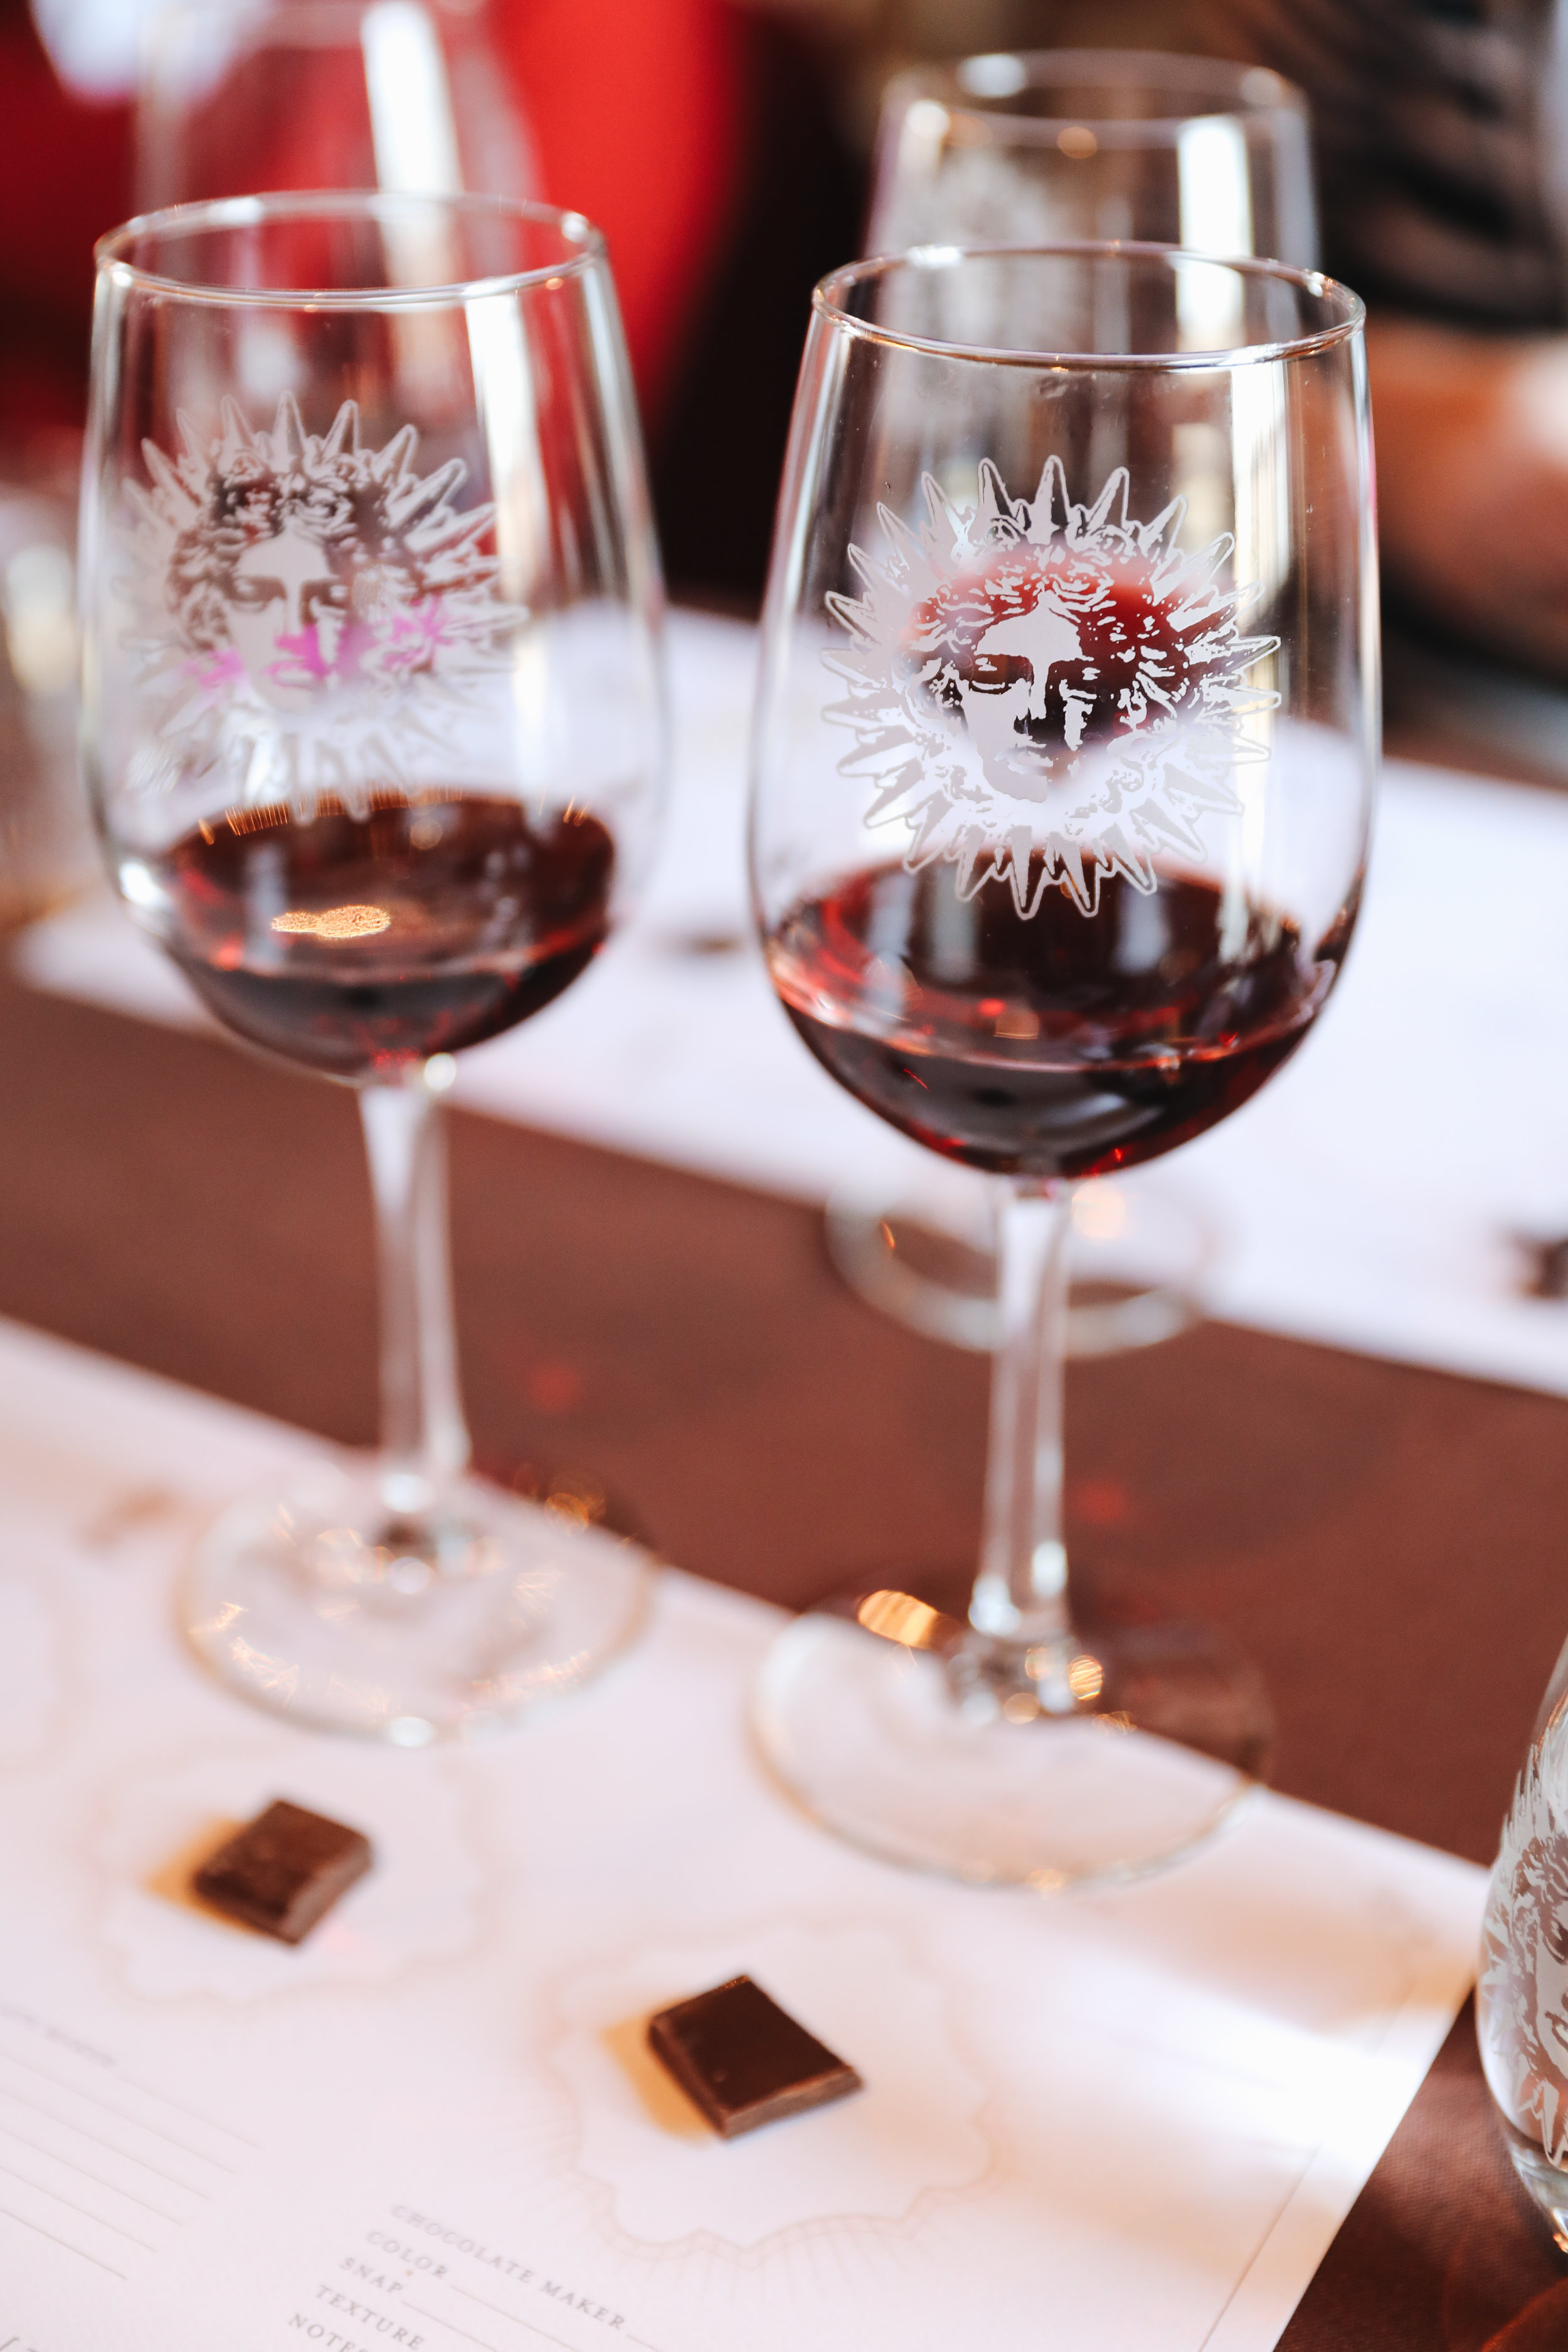 ChocolateWinePairing-3896.jpg